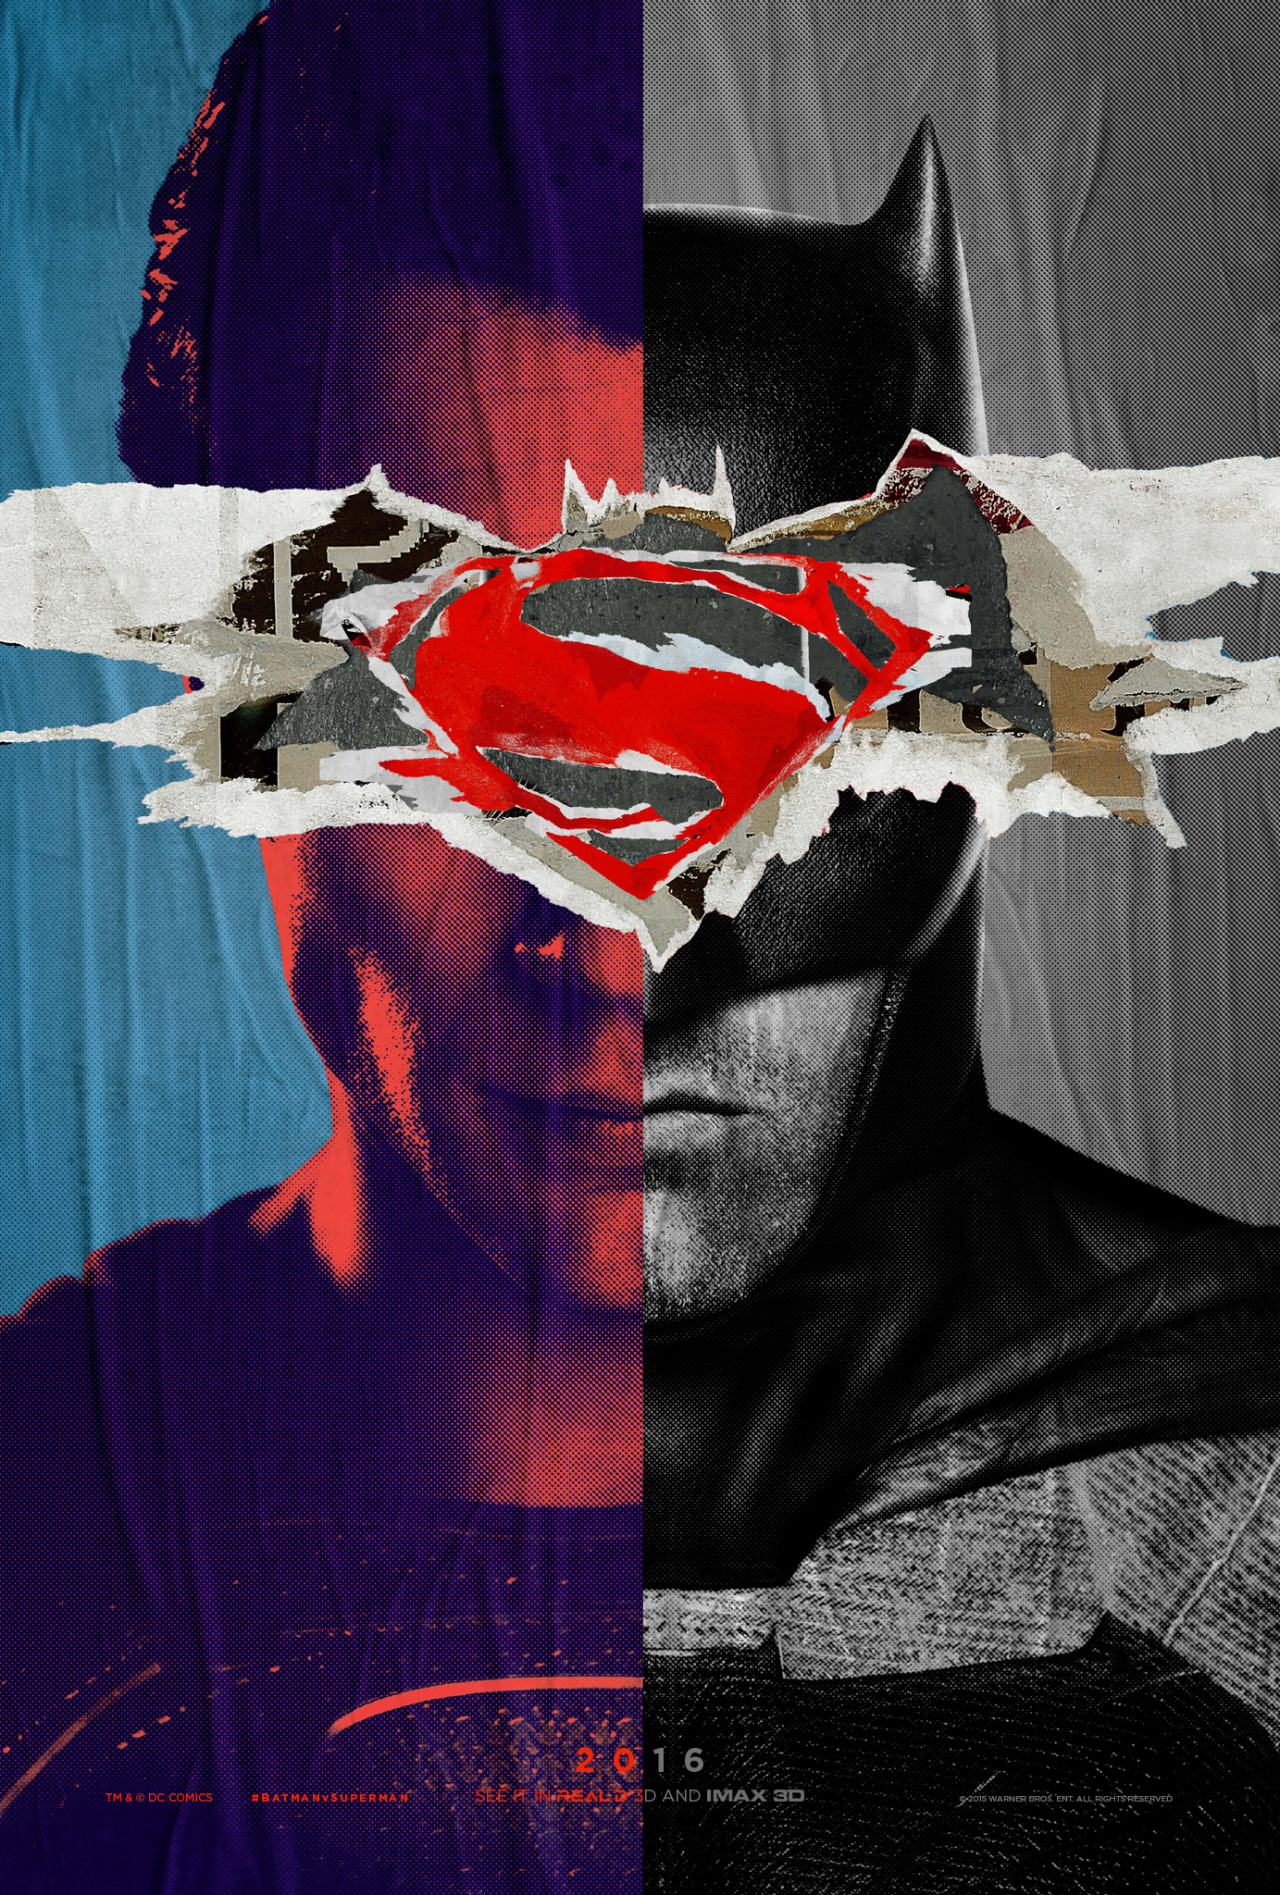 Batman-v-Superman-Dawn-of-Justice-by-Antovolk-wallpaper-wp6002241